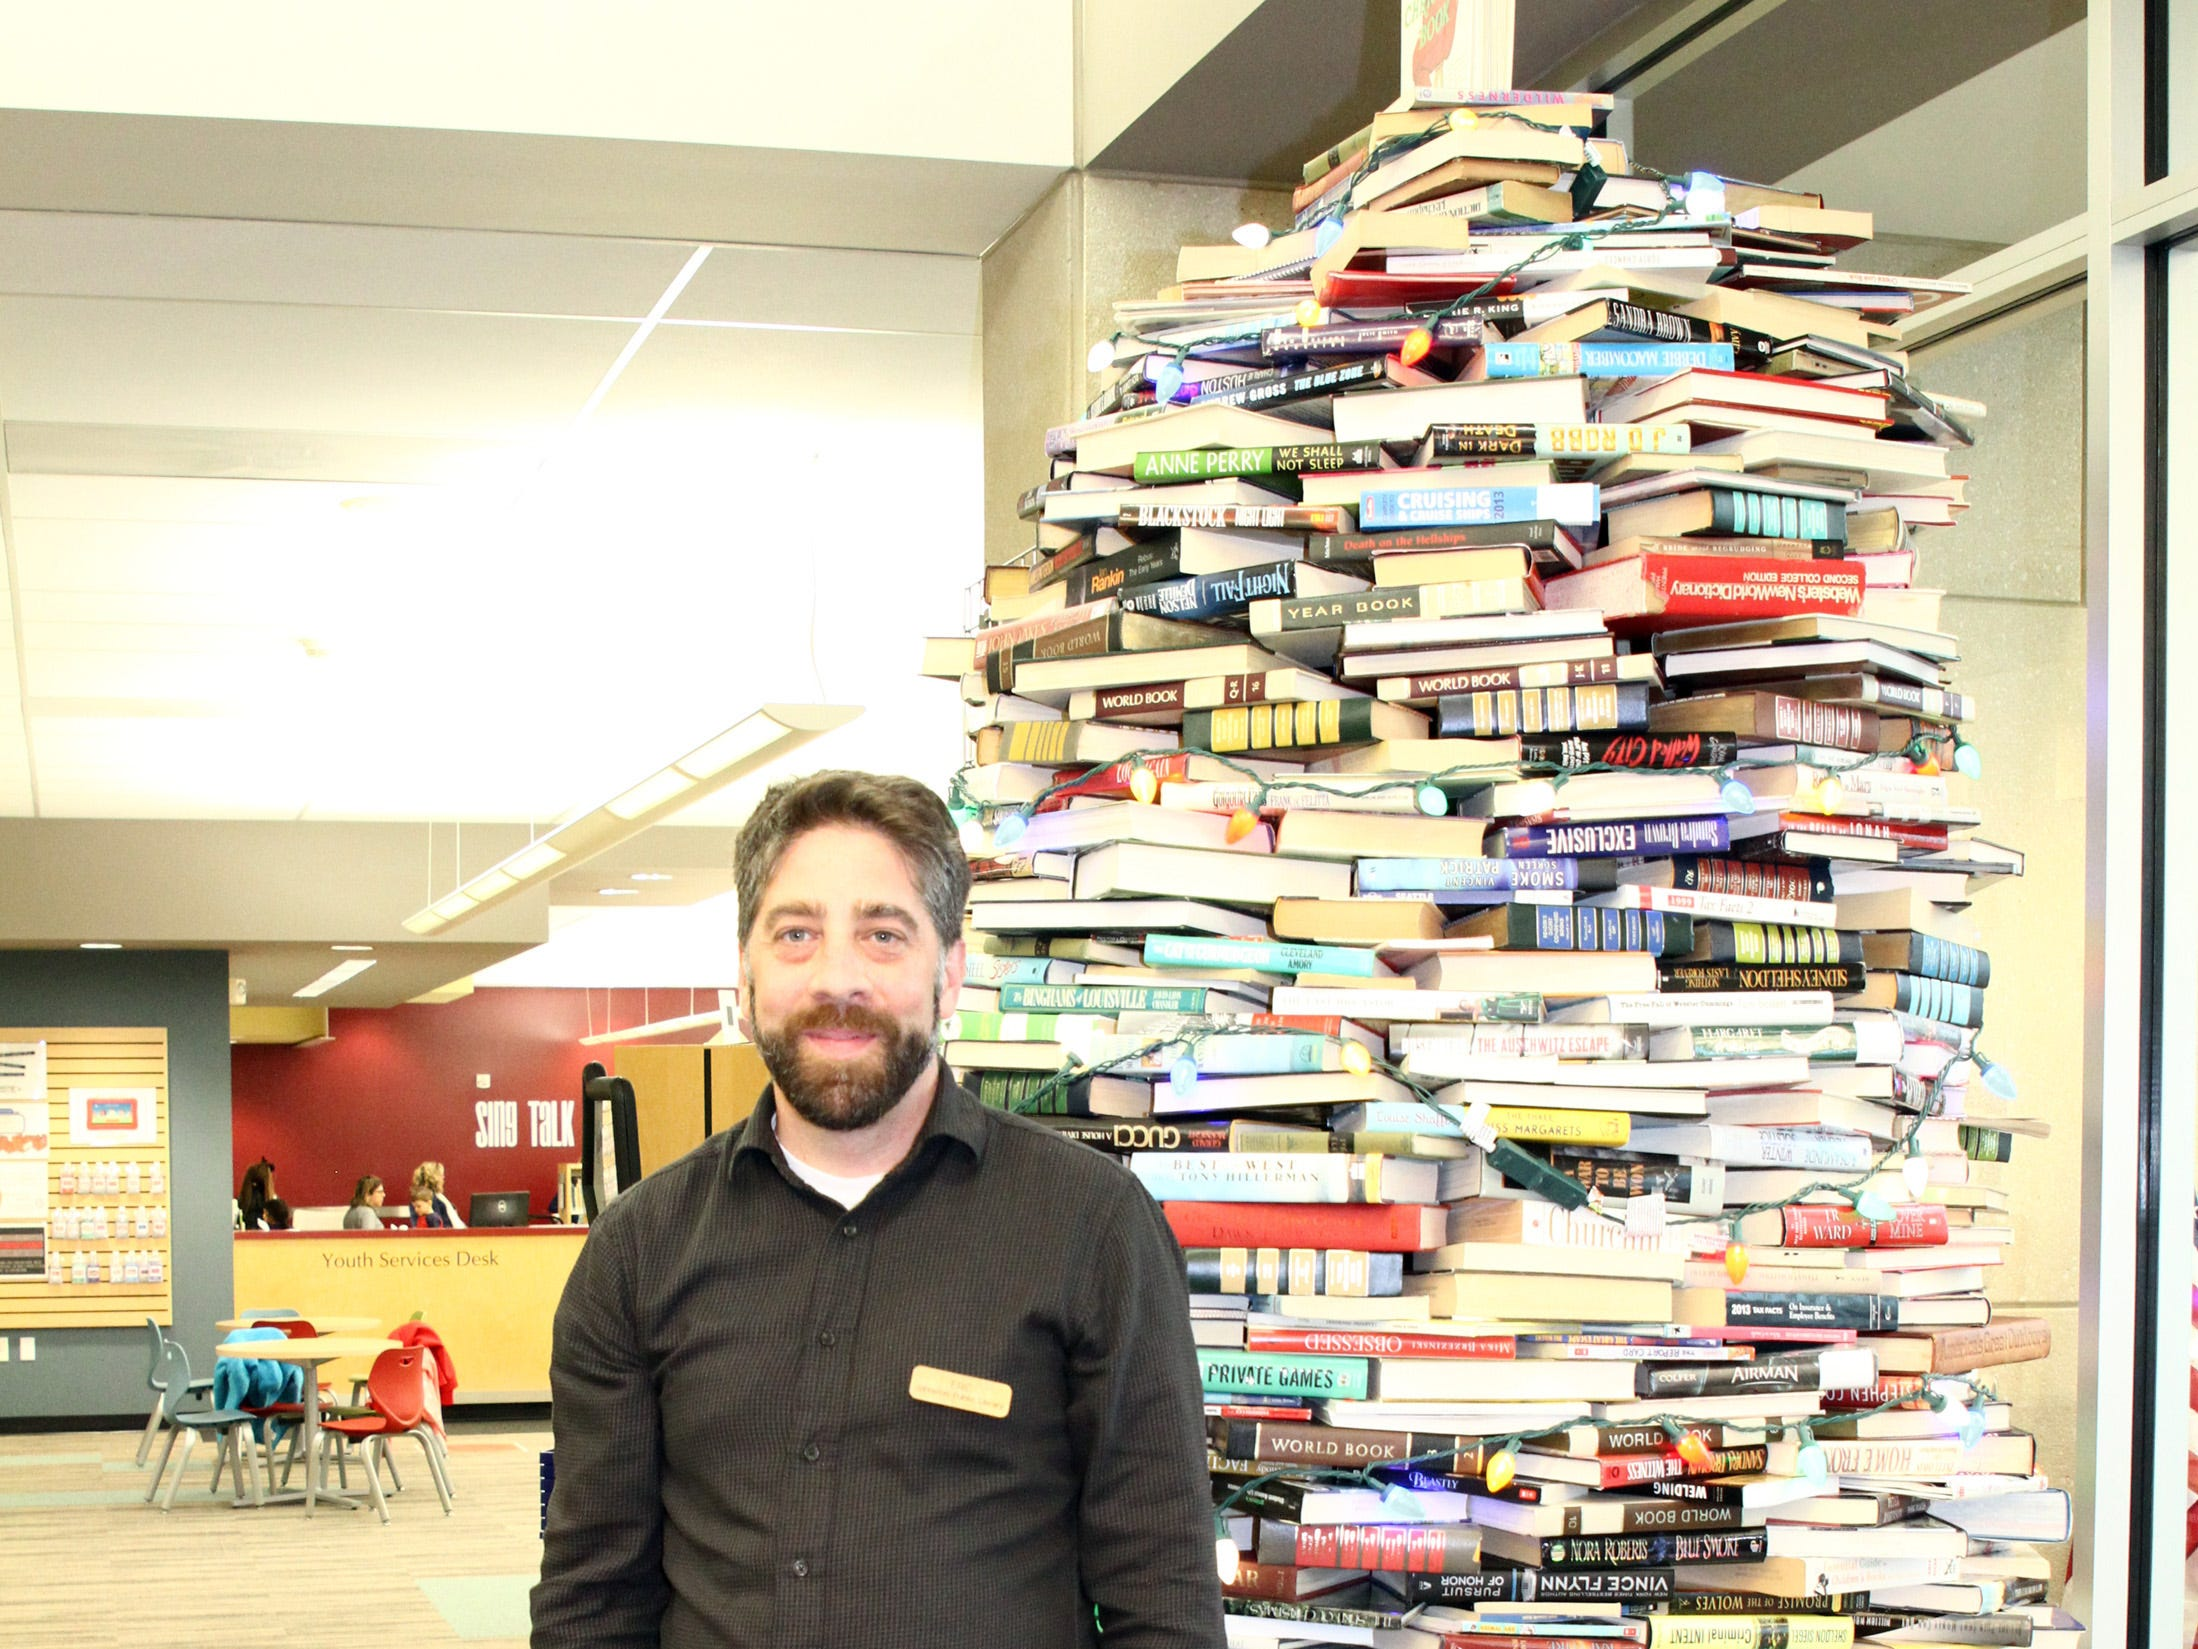 Library Director Eric Melton stands by the book tree during Holidays in Johnston on Saturday, Dec. 1, 2018 at the Johnston Public Library featuring gingerbread house contest, cookie decorating, story and craft time and Santa.